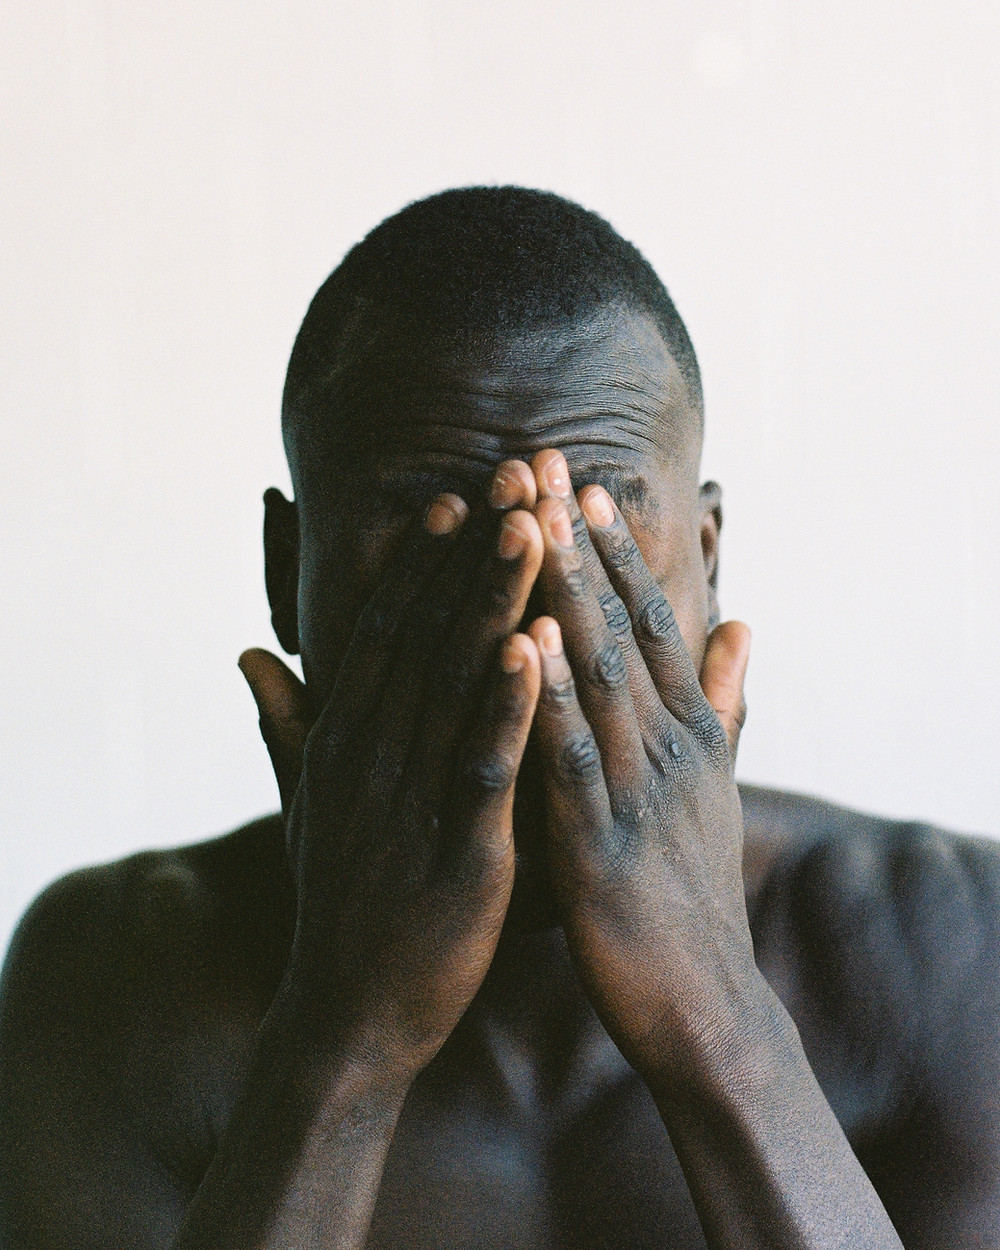 African-American man covering his face and wrinkling his brow